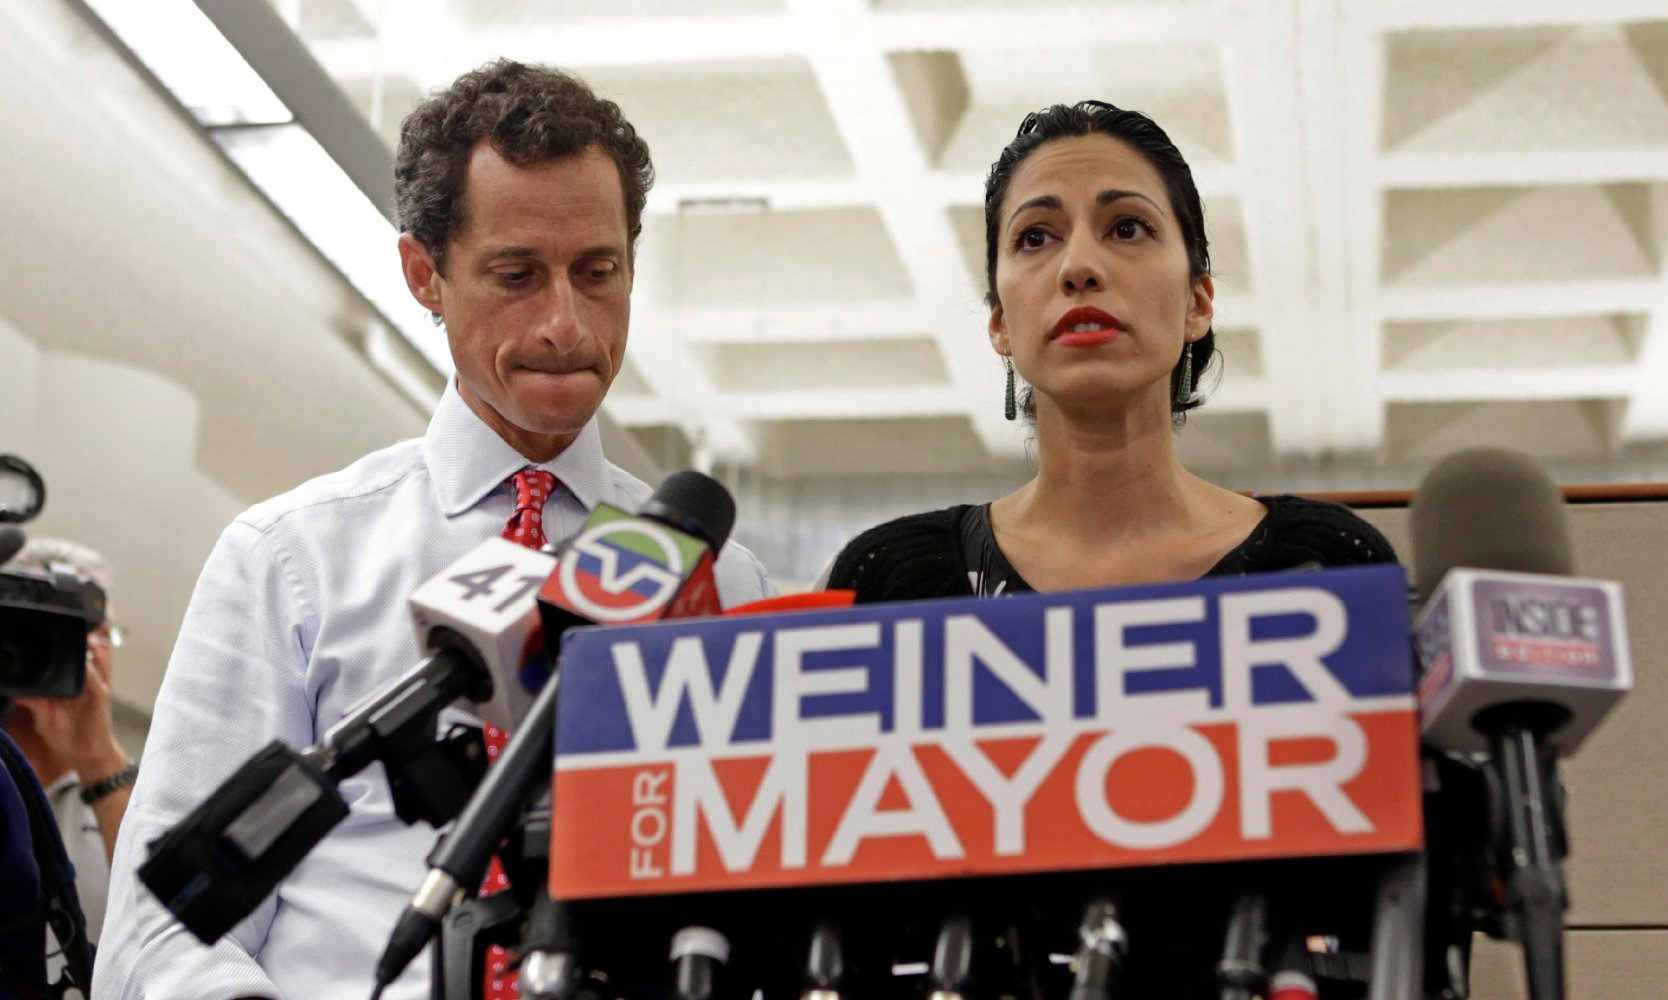 Weiner Pleads for Leniency in Sexting Case, Says Actions 'Crushed the Aspirations of My Wife'